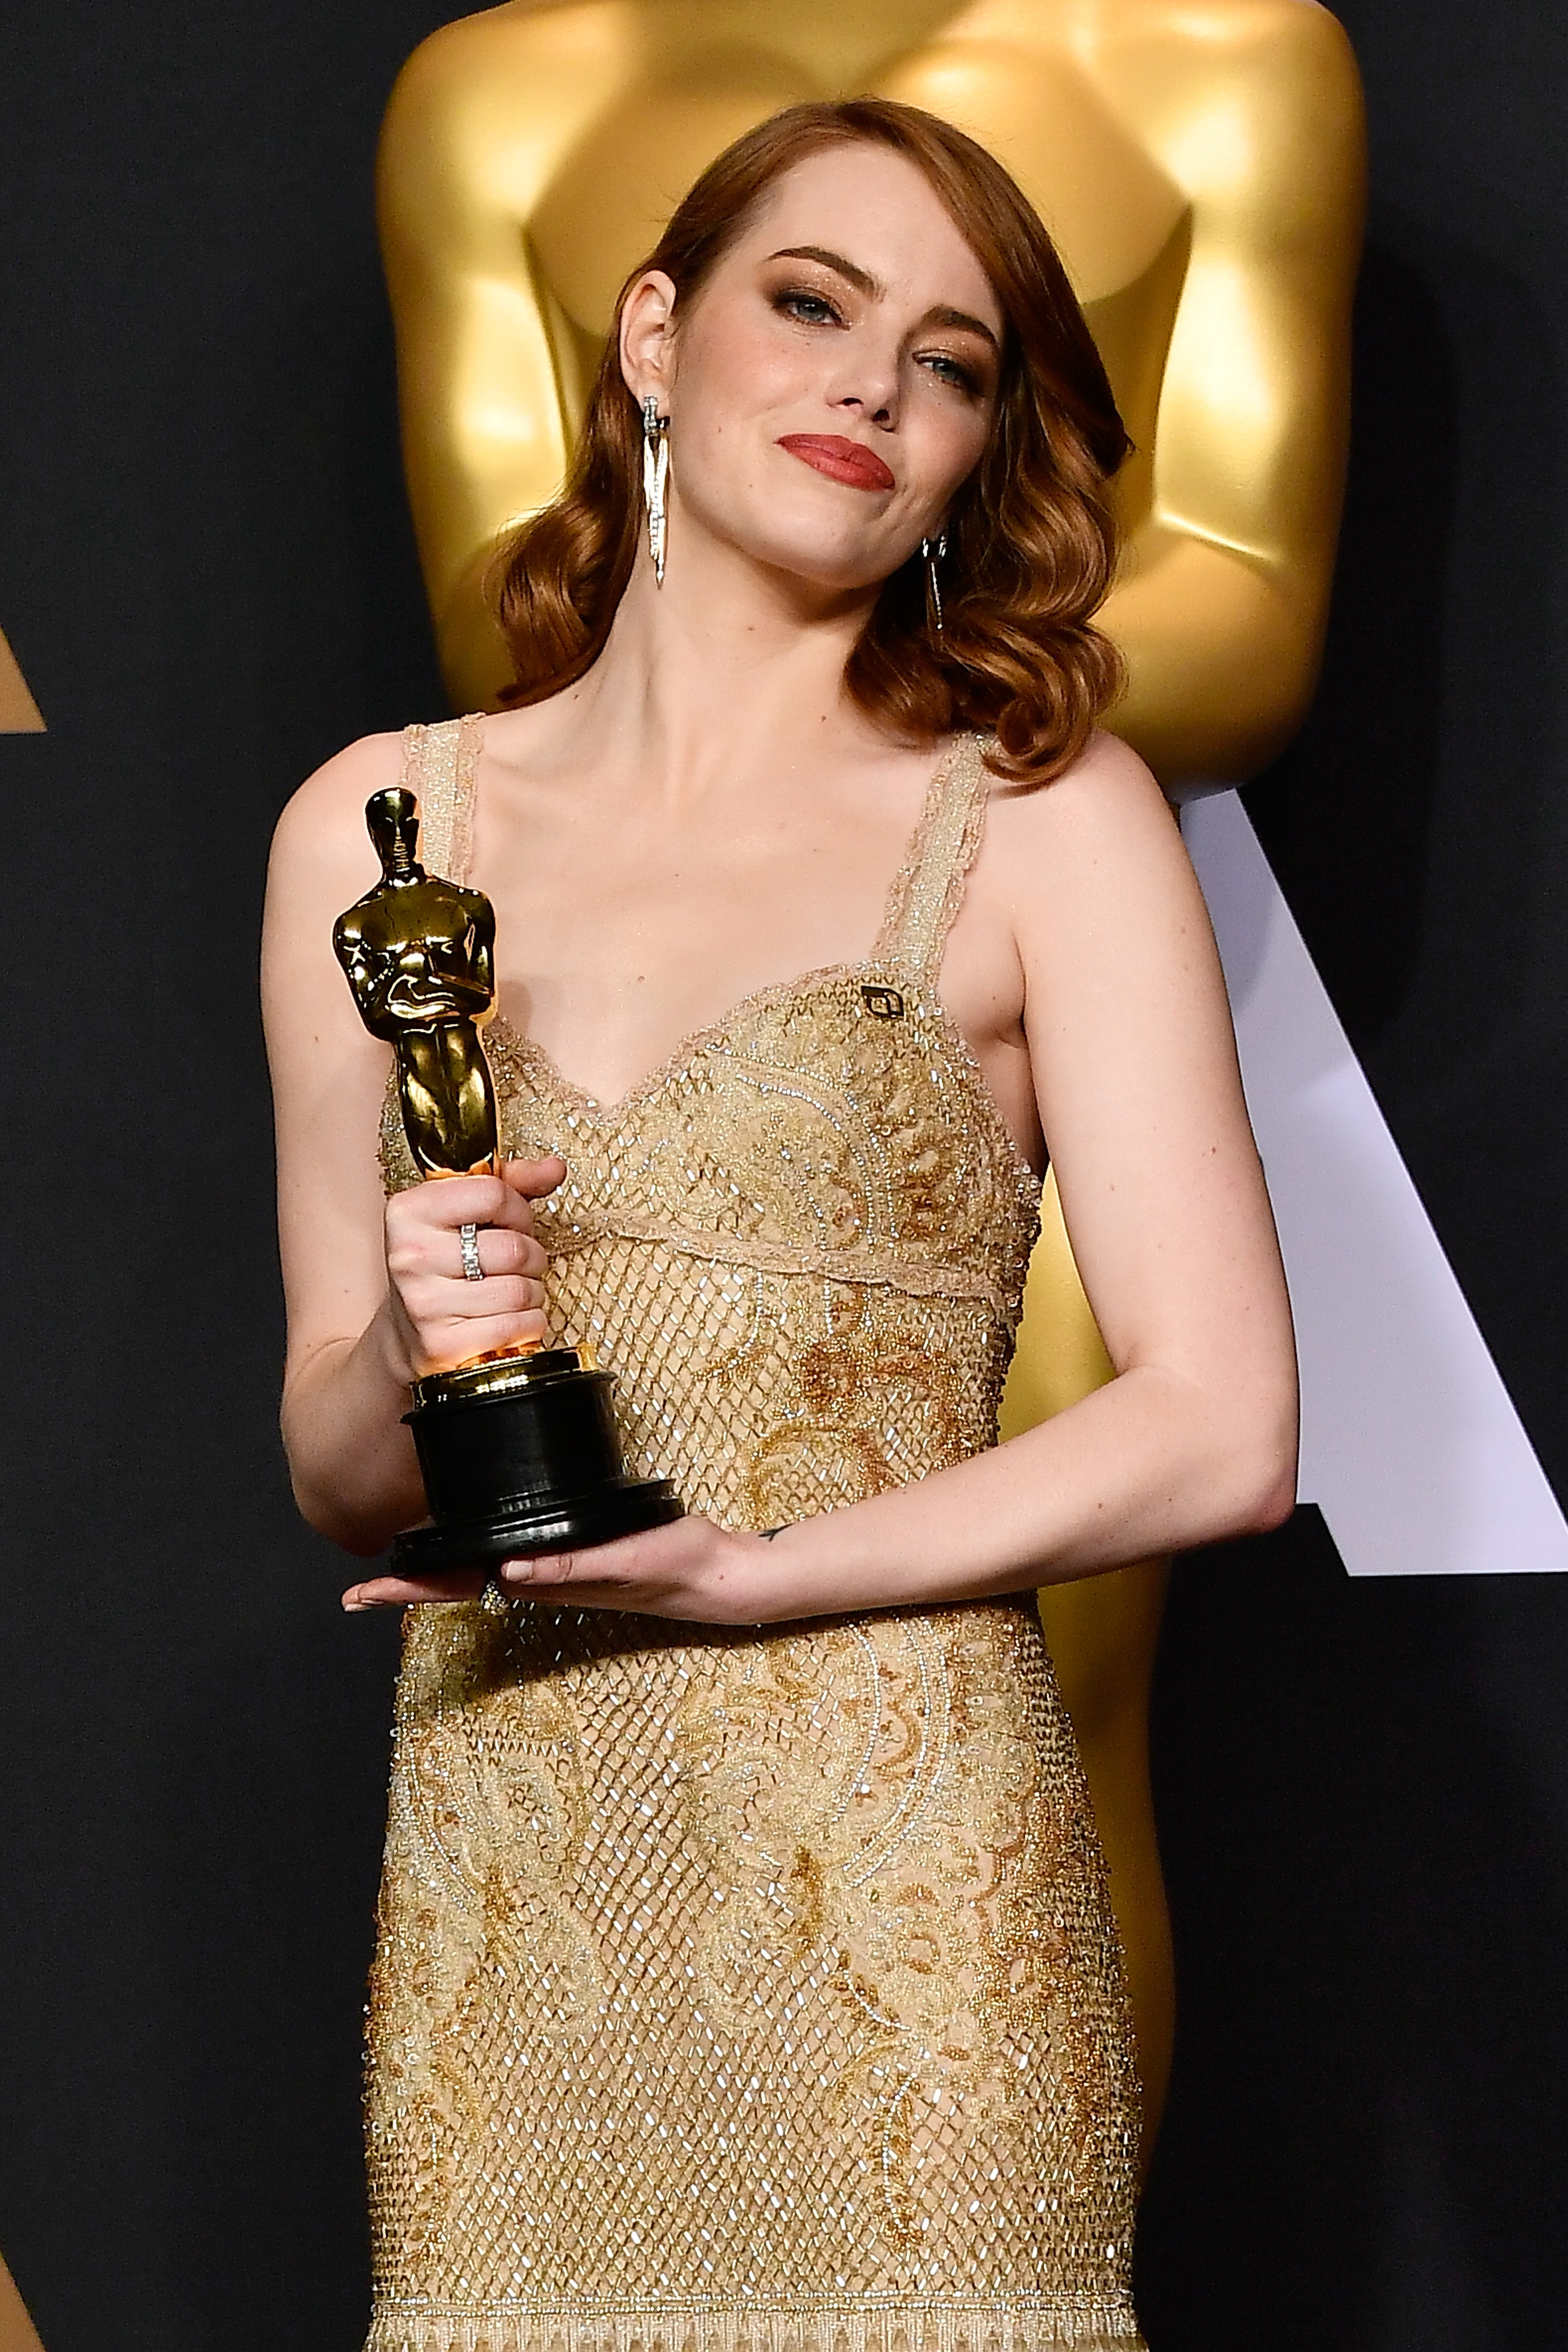 HOLLYWOOD, CA - FEBRUARY 26: Actress Emma Stone, winner of Best Actress for 'La La Land' poses in the press room during the 89th Annual Academy Awards at Hollywood & Highland Center on February 26, 2017 in Hollywood, California. Frazer Harrison/Getty Images/AFP